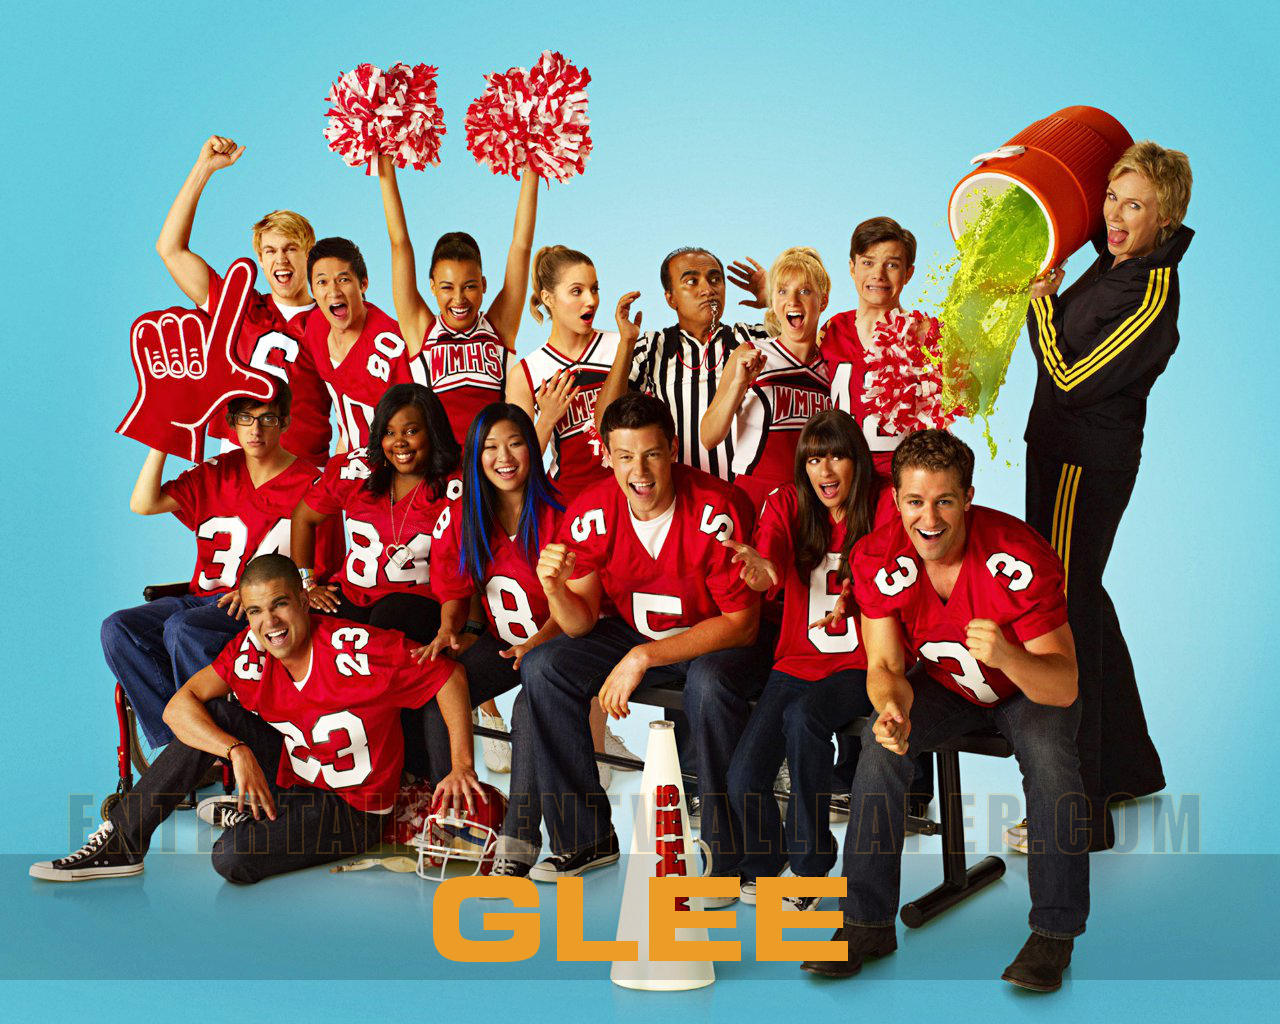 tv show glee wallpaper 20025668 size 1280x1024 more glee wallpaper 1280x1024